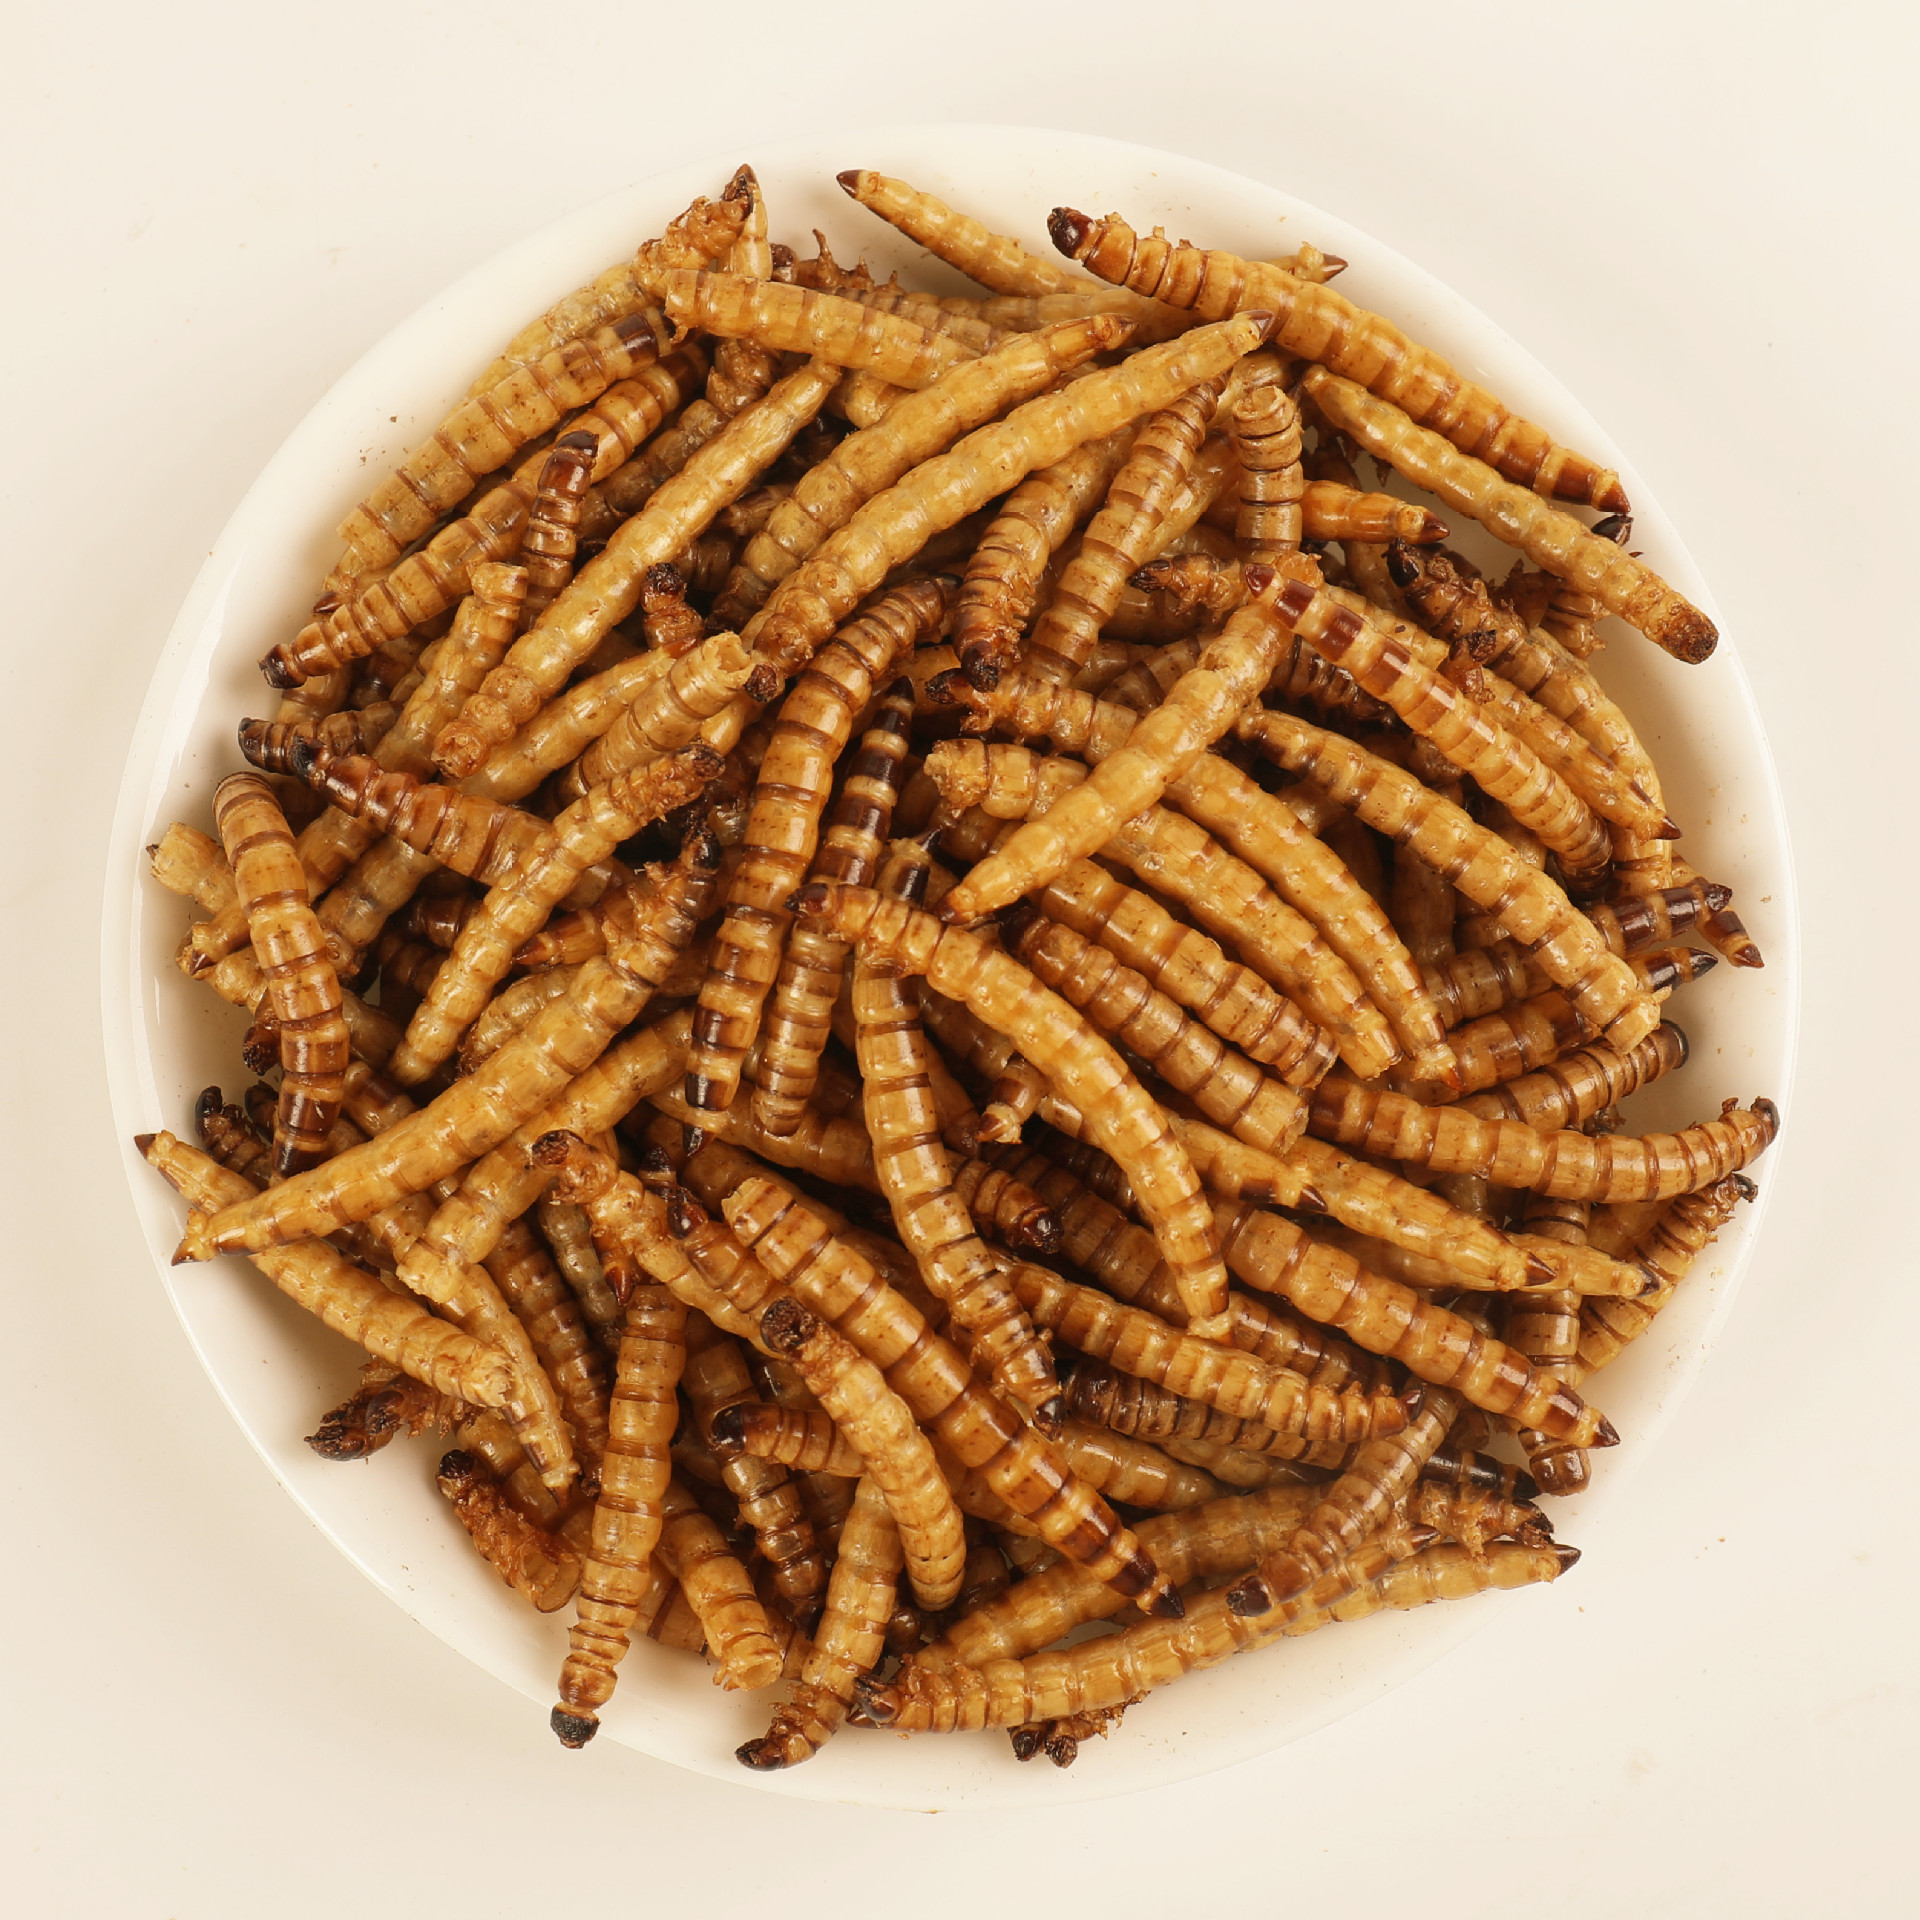 Dried Cricket Mealworm Grasshopper All Natural Pet Food